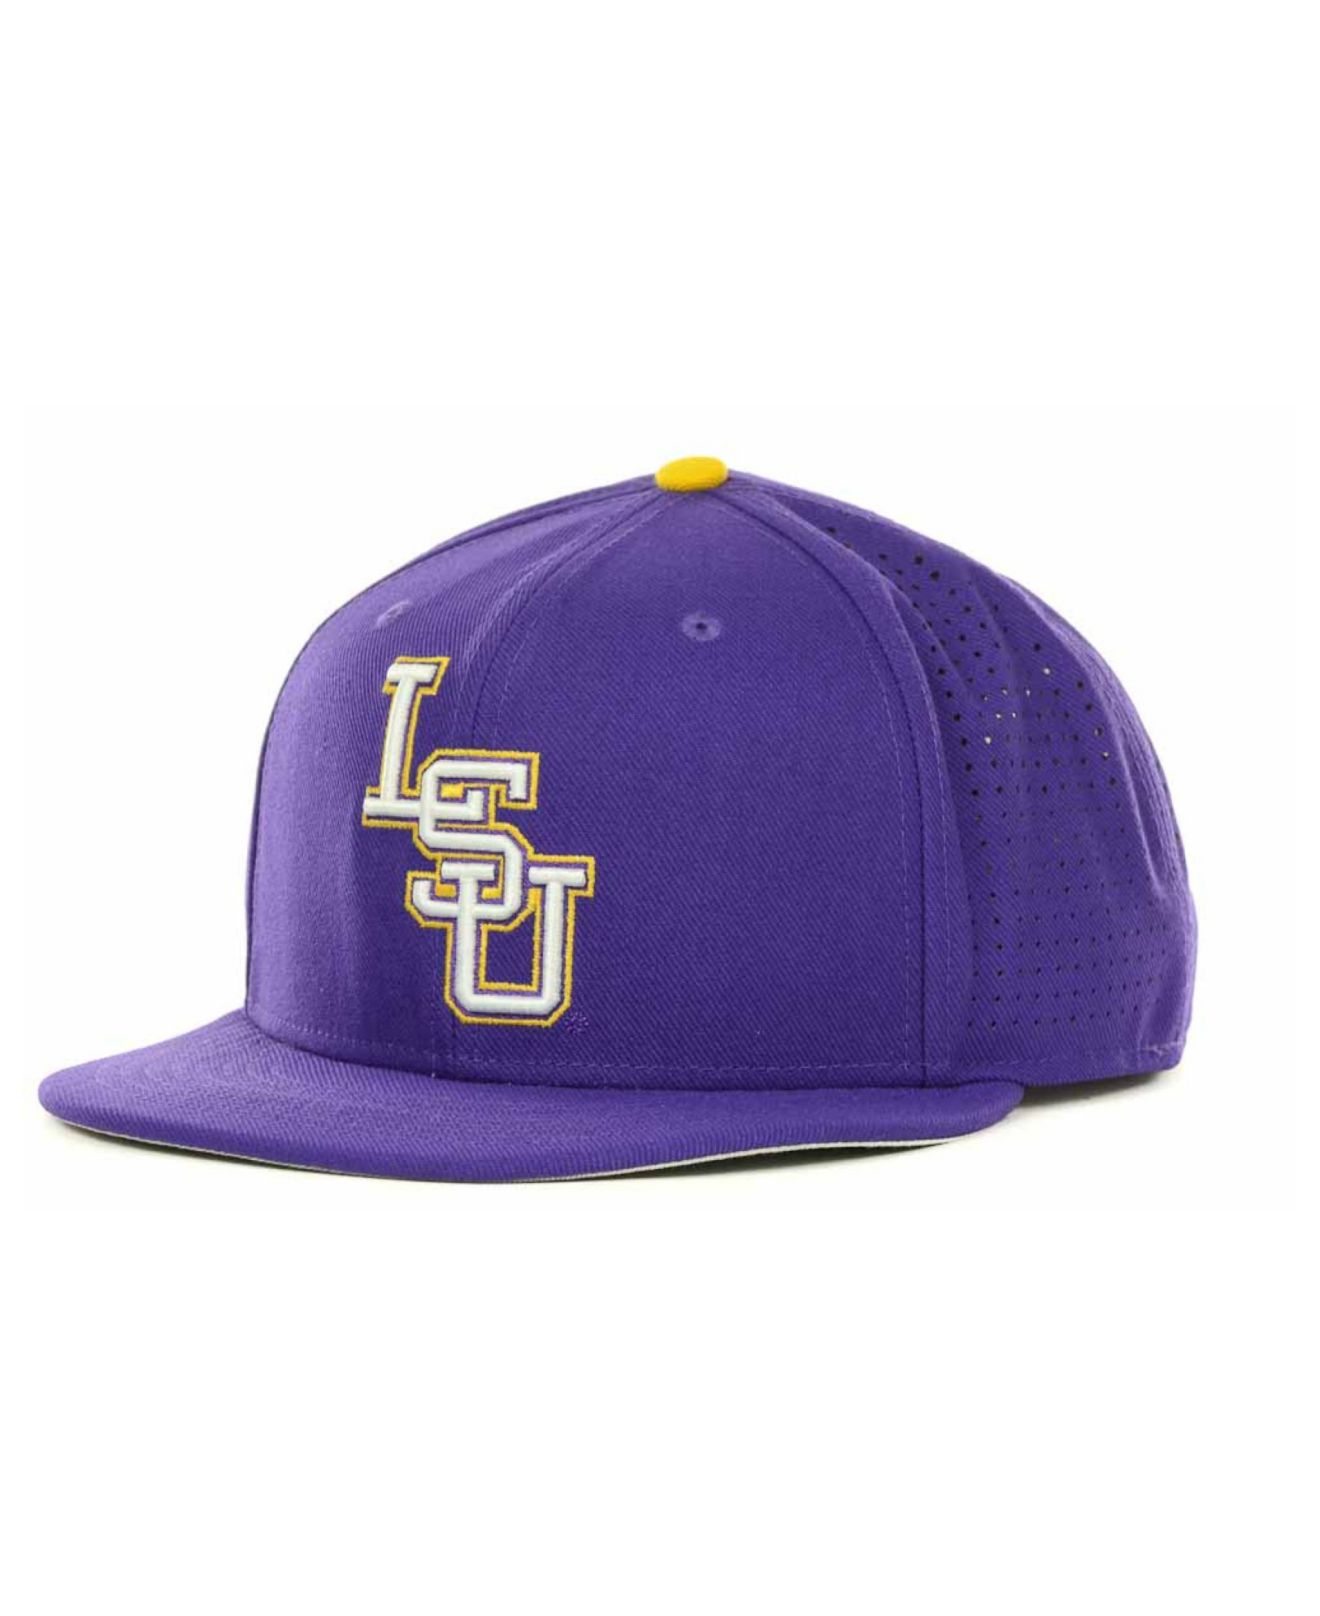 best loved ef0cb 6a8b8 ... cheap lyst nike lsu tigers ncaa authentic vapor fitted cap in purple  for men 4258b 54701